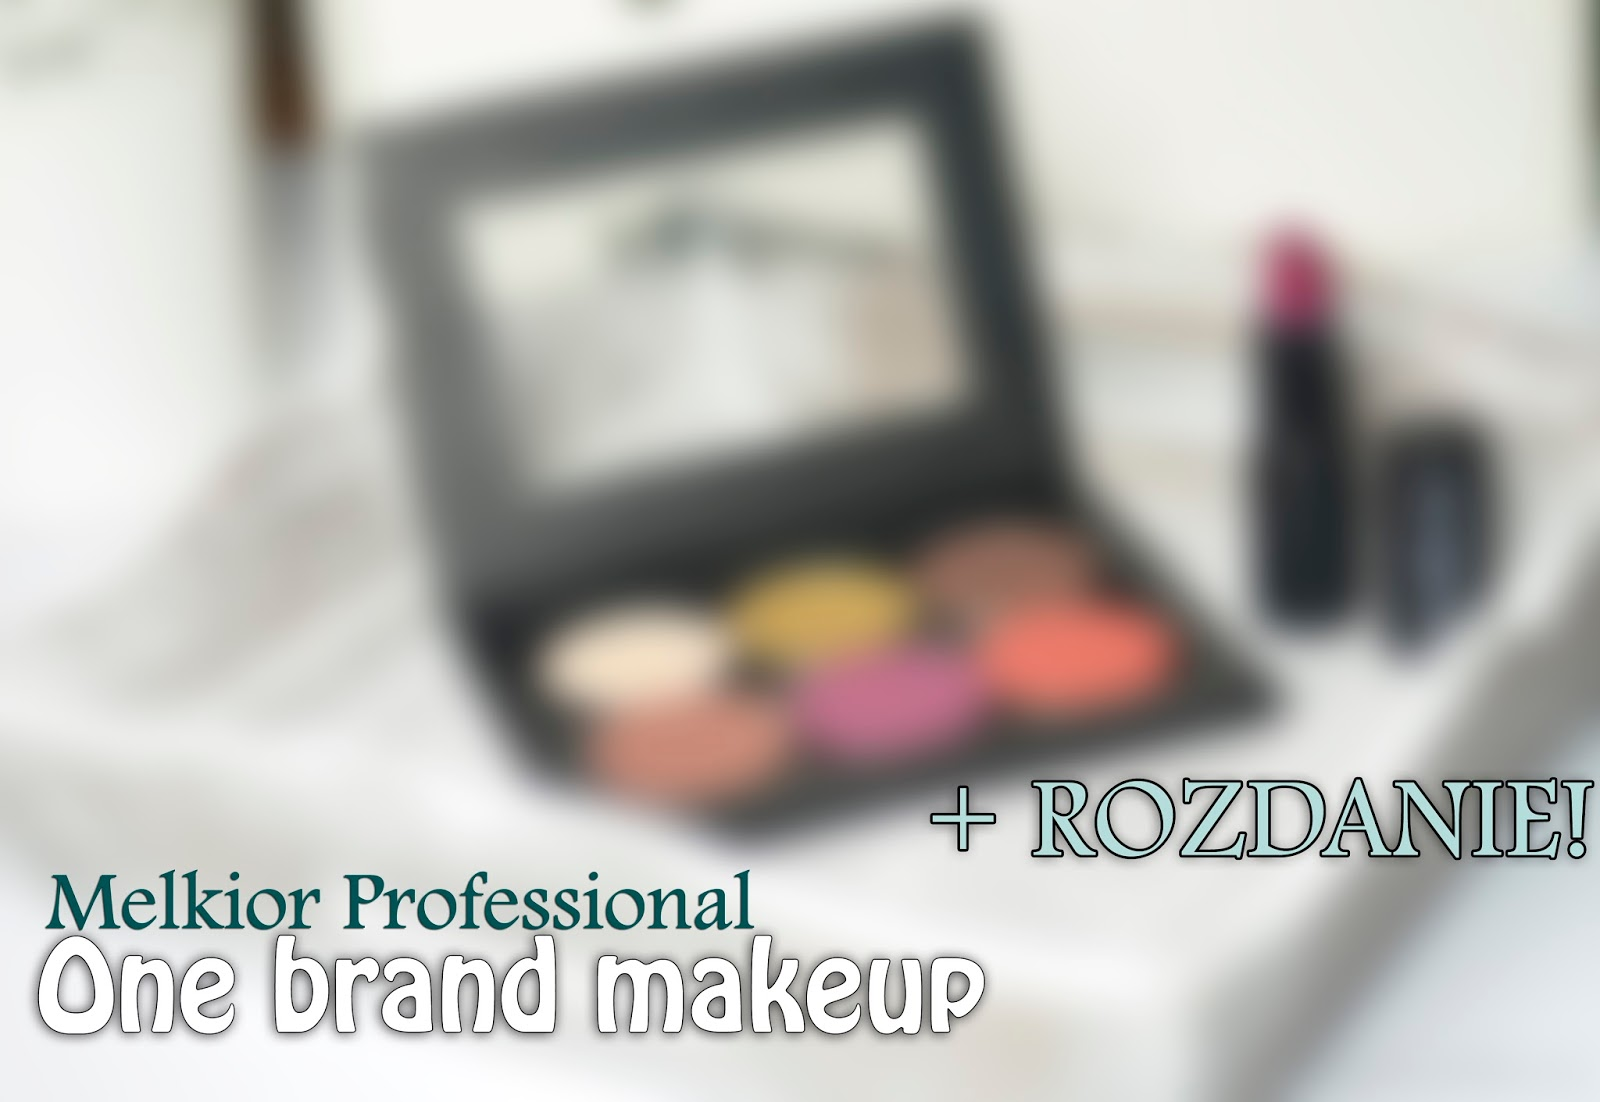 One brand makeup: Melkior Professional